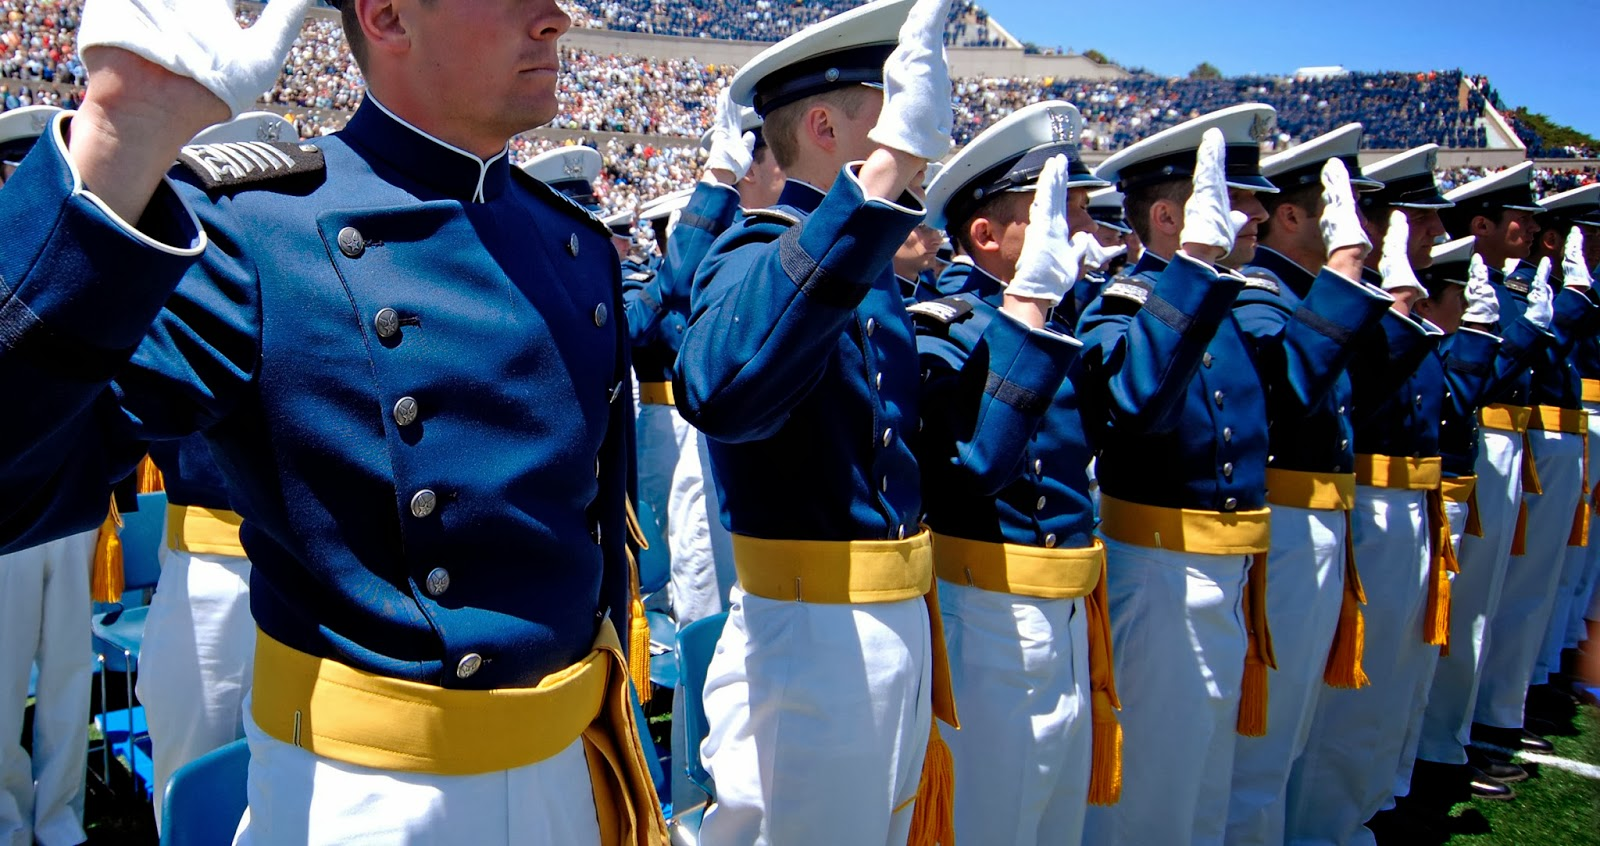 united states air force academy culture Of sexual assault rock the united states air force academy  number of  allegations shined a harsh light on the academy's culture and.